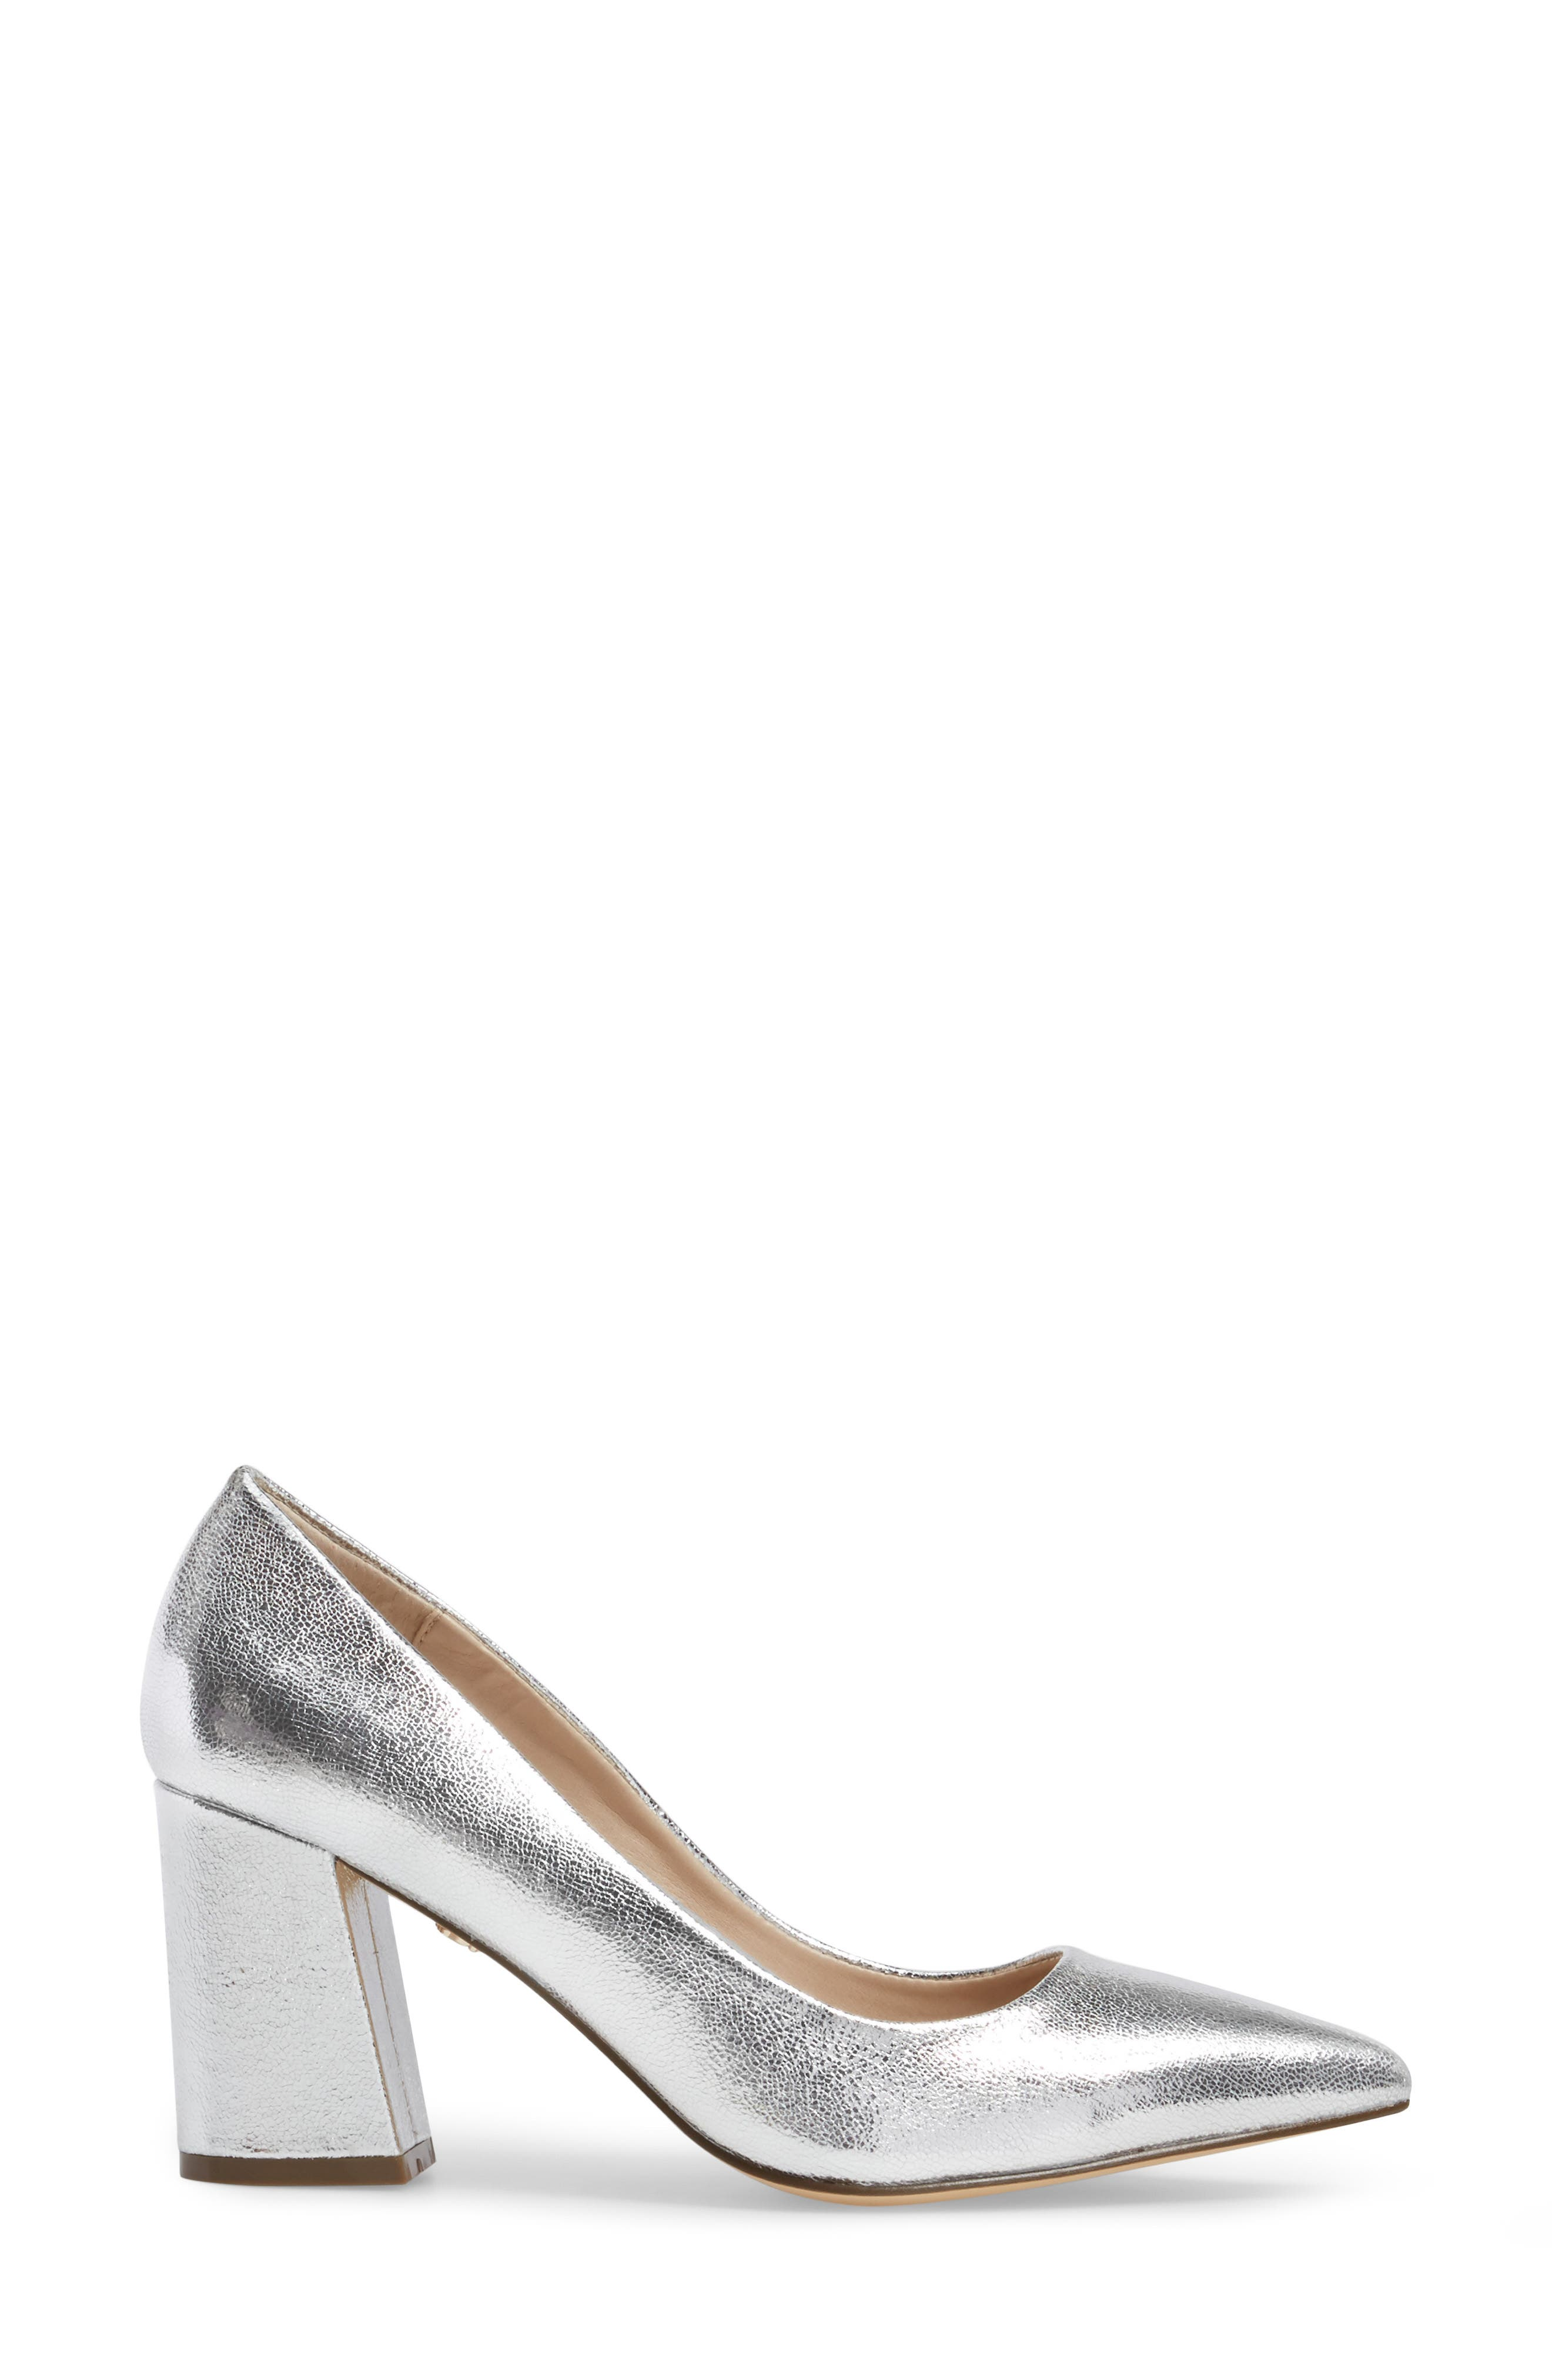 Tinsley Pointy Toe Pump,                             Alternate thumbnail 9, color,